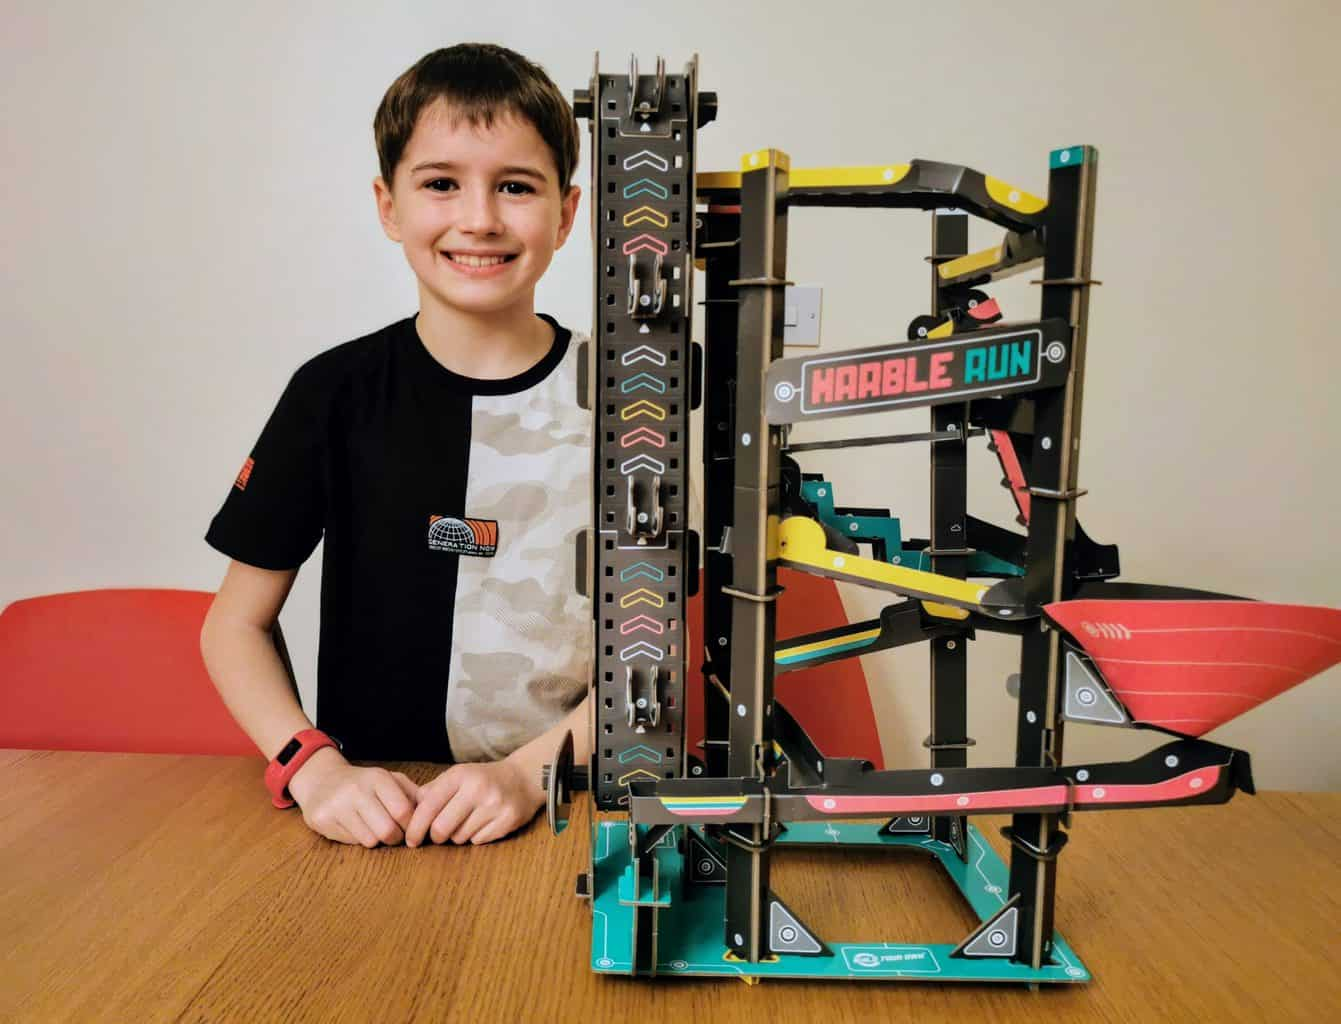 Build Your Own Marble Run Kit